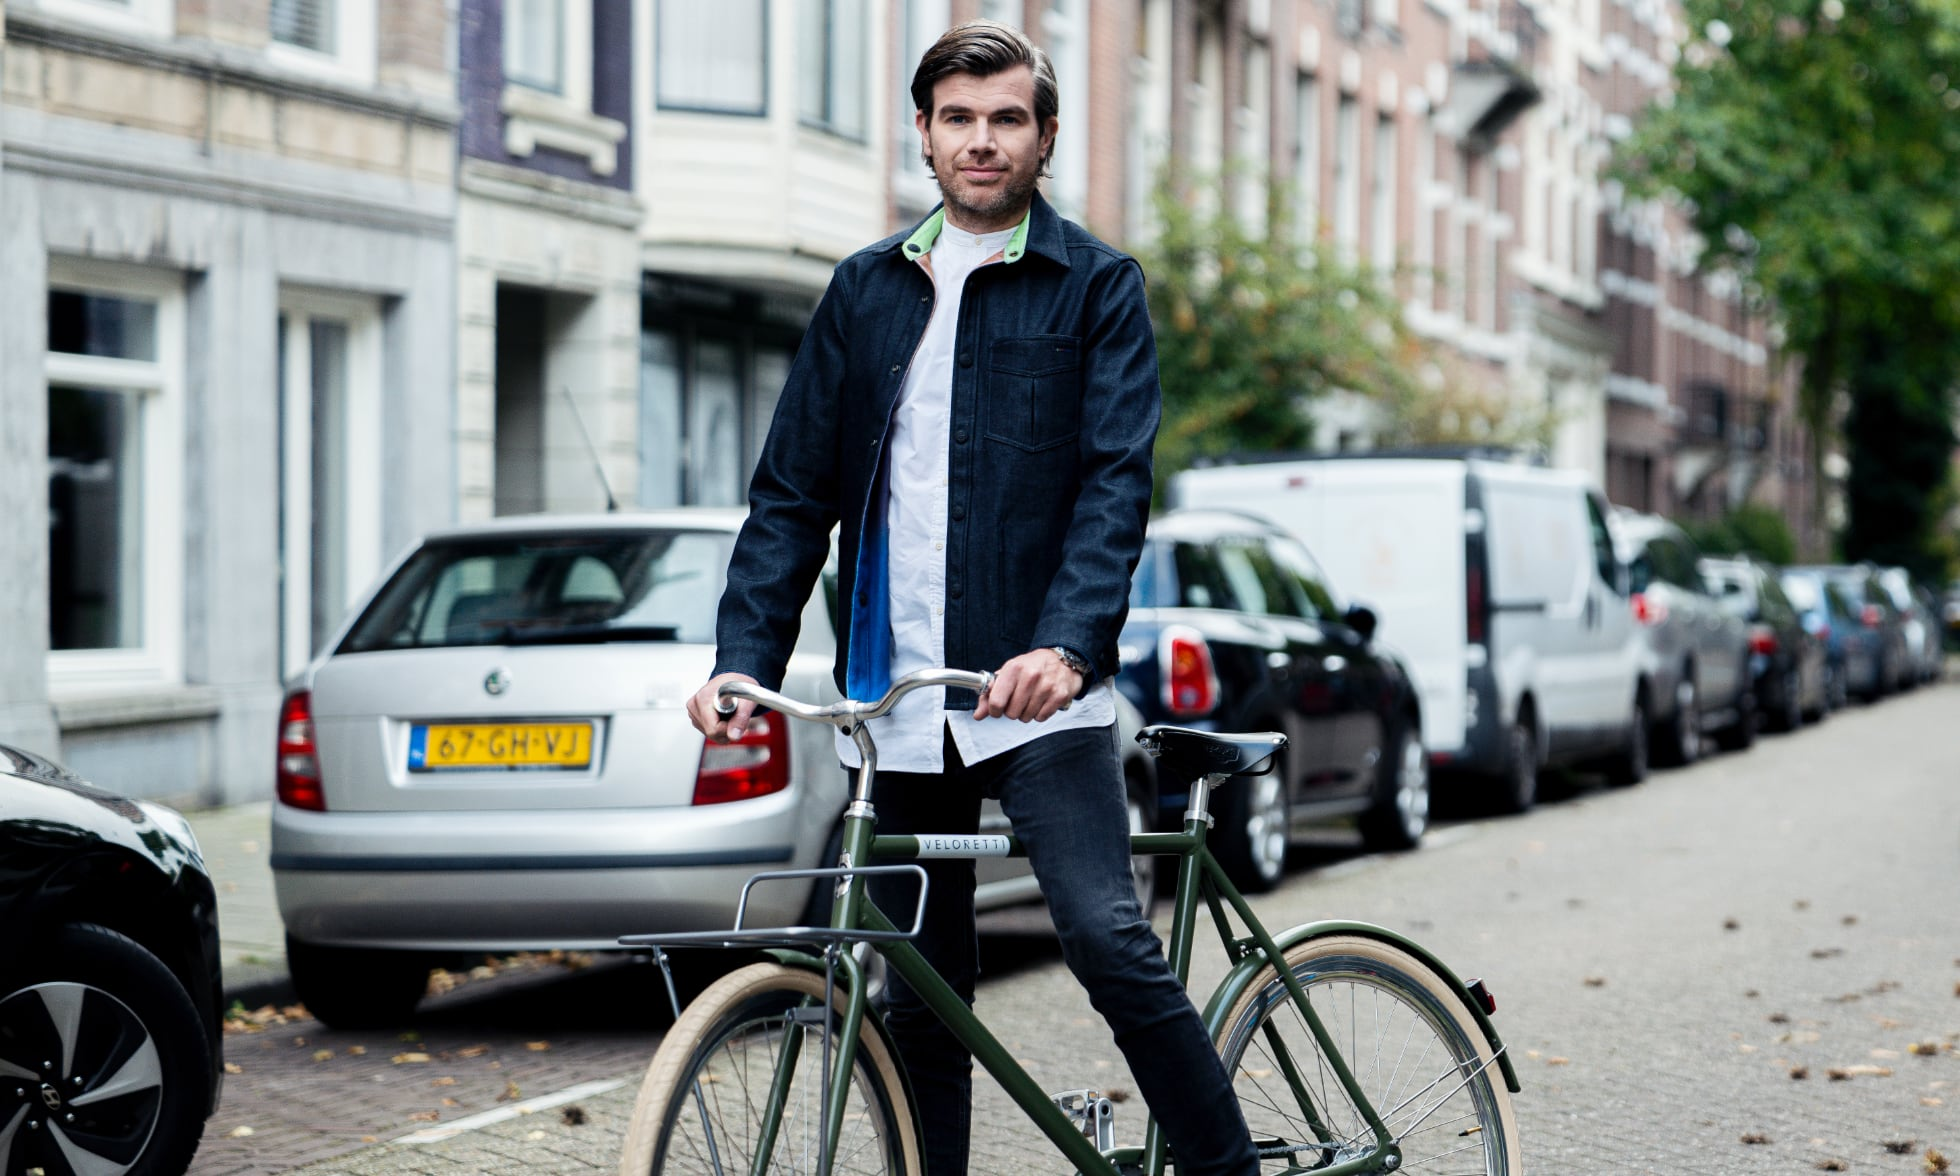 Ferry Zonder posing with a Veloretti Bicycle